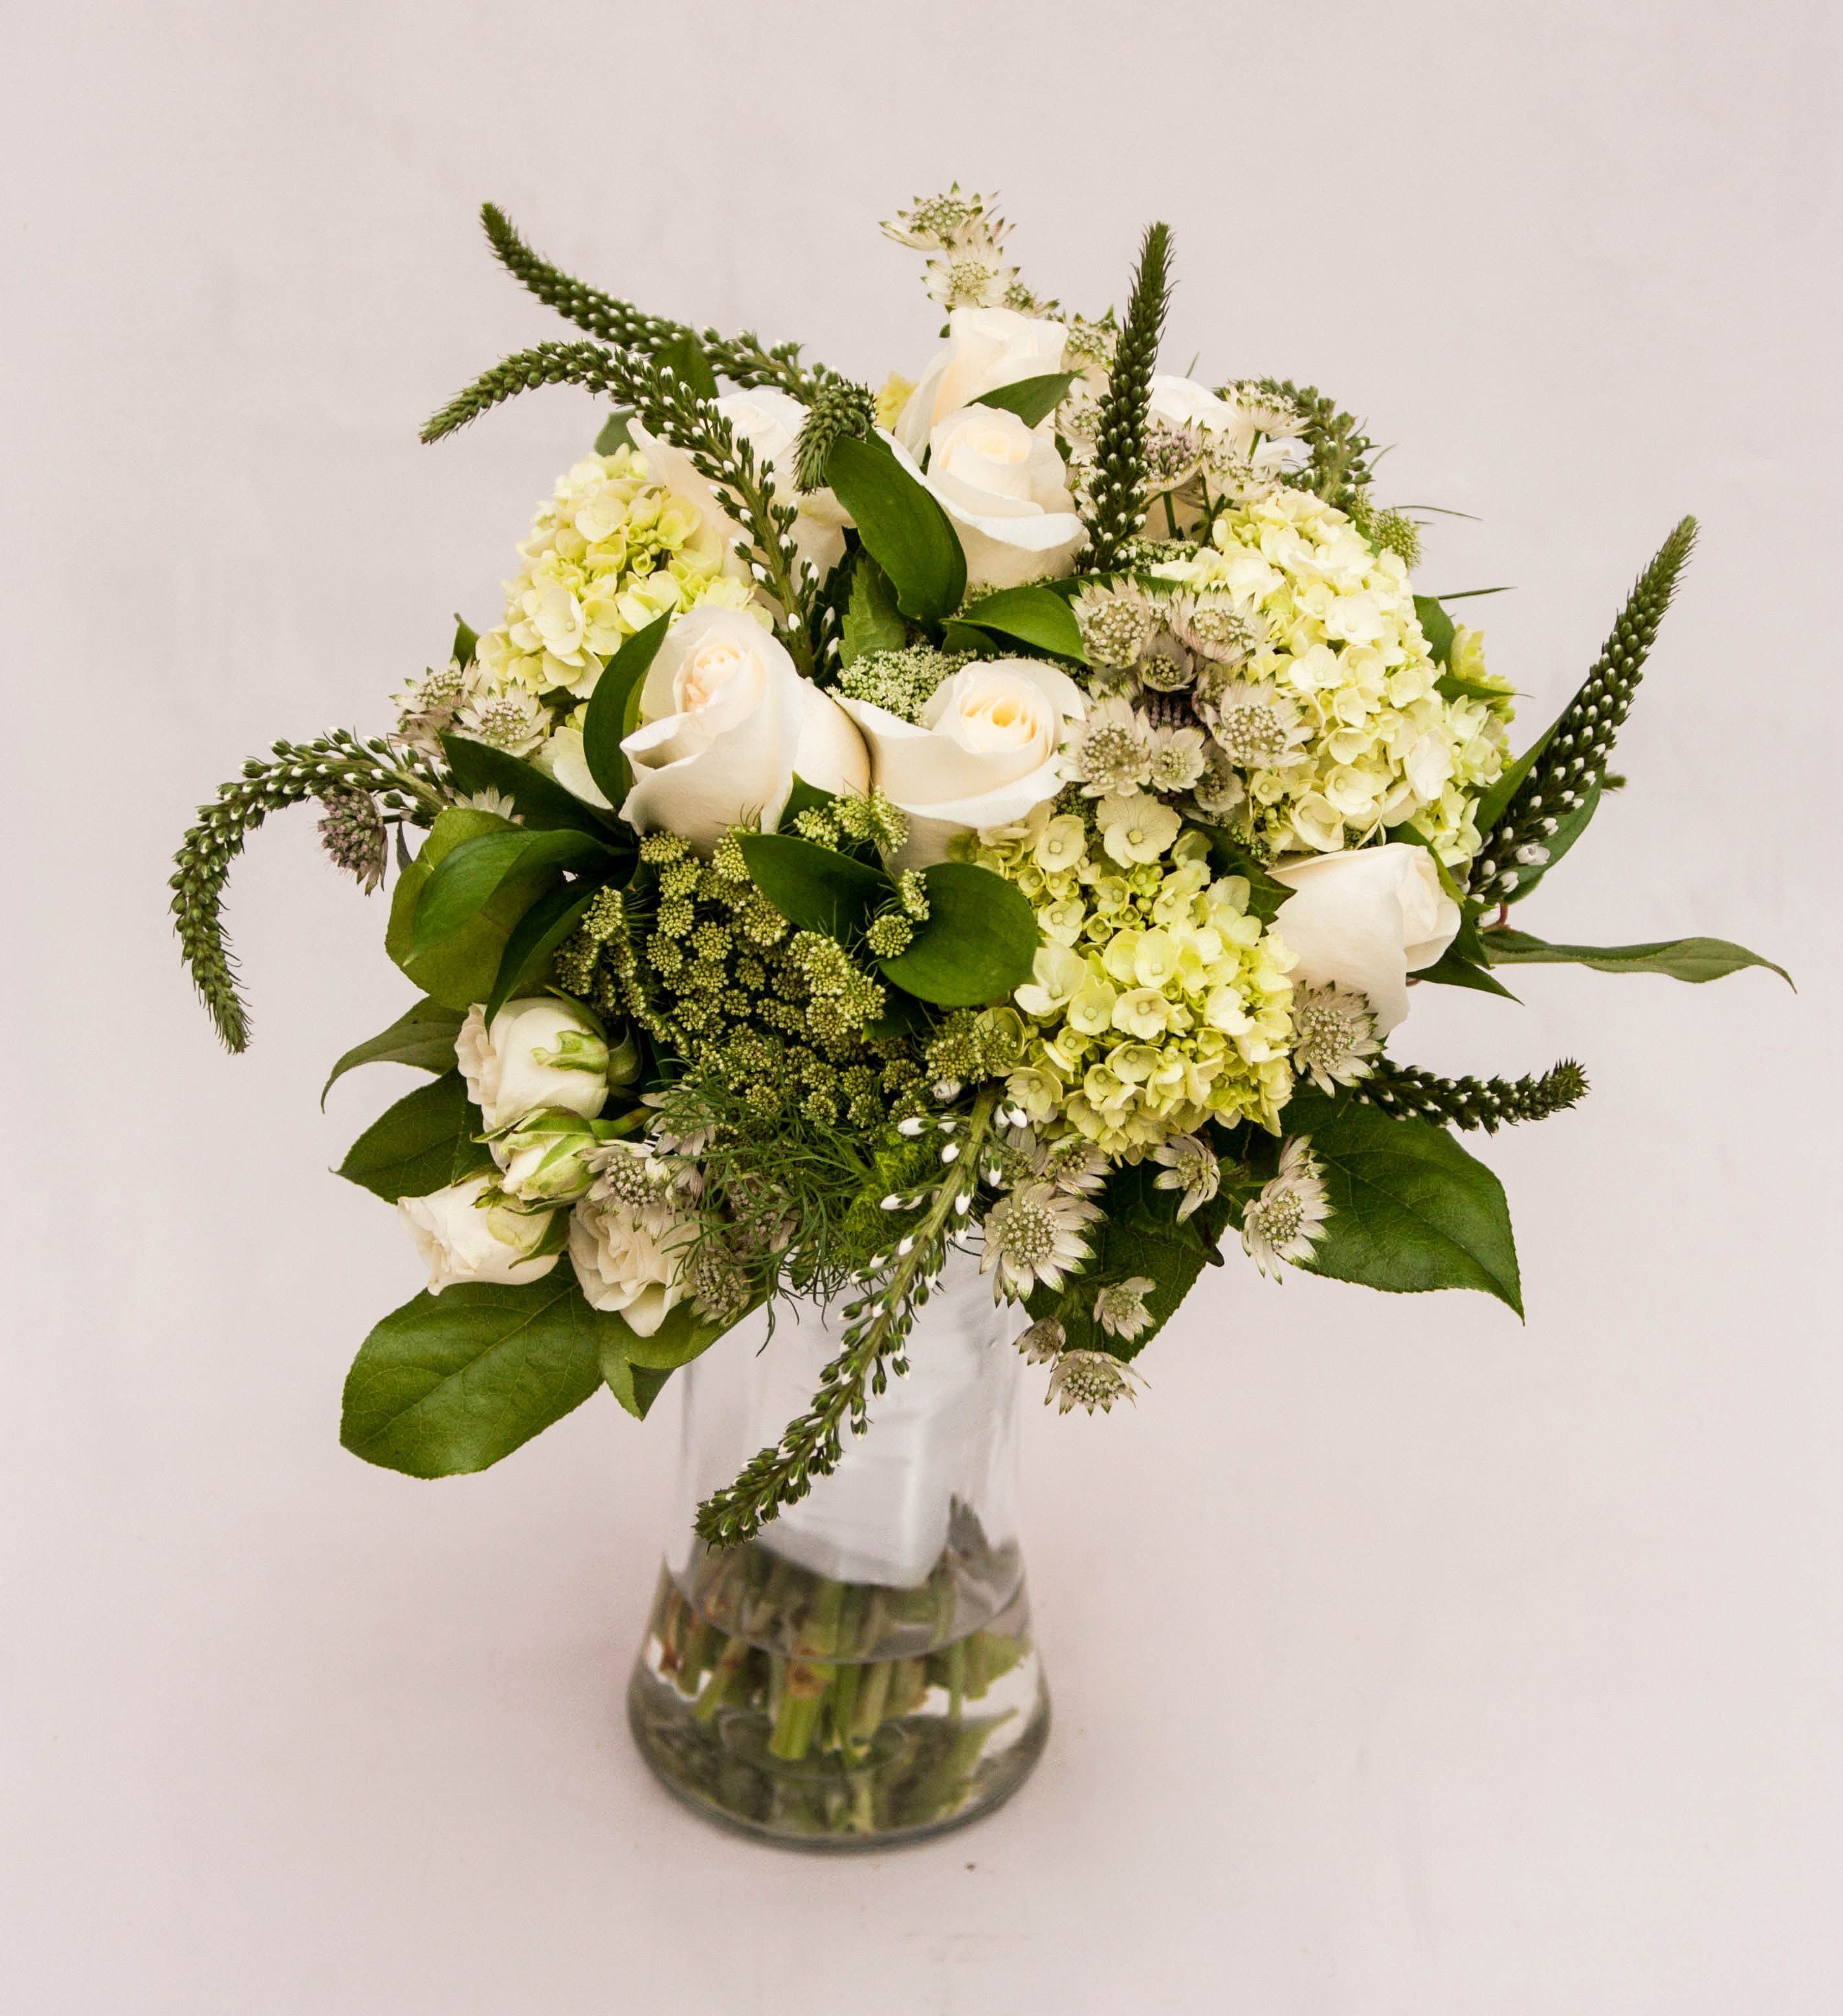 Bridal Bouquet With Roses Spray Hydrangea Queen Anne S Lace Scabiosa Veronica And Lemon Leaf Countryside Flower Nursery Crystal Lake Il